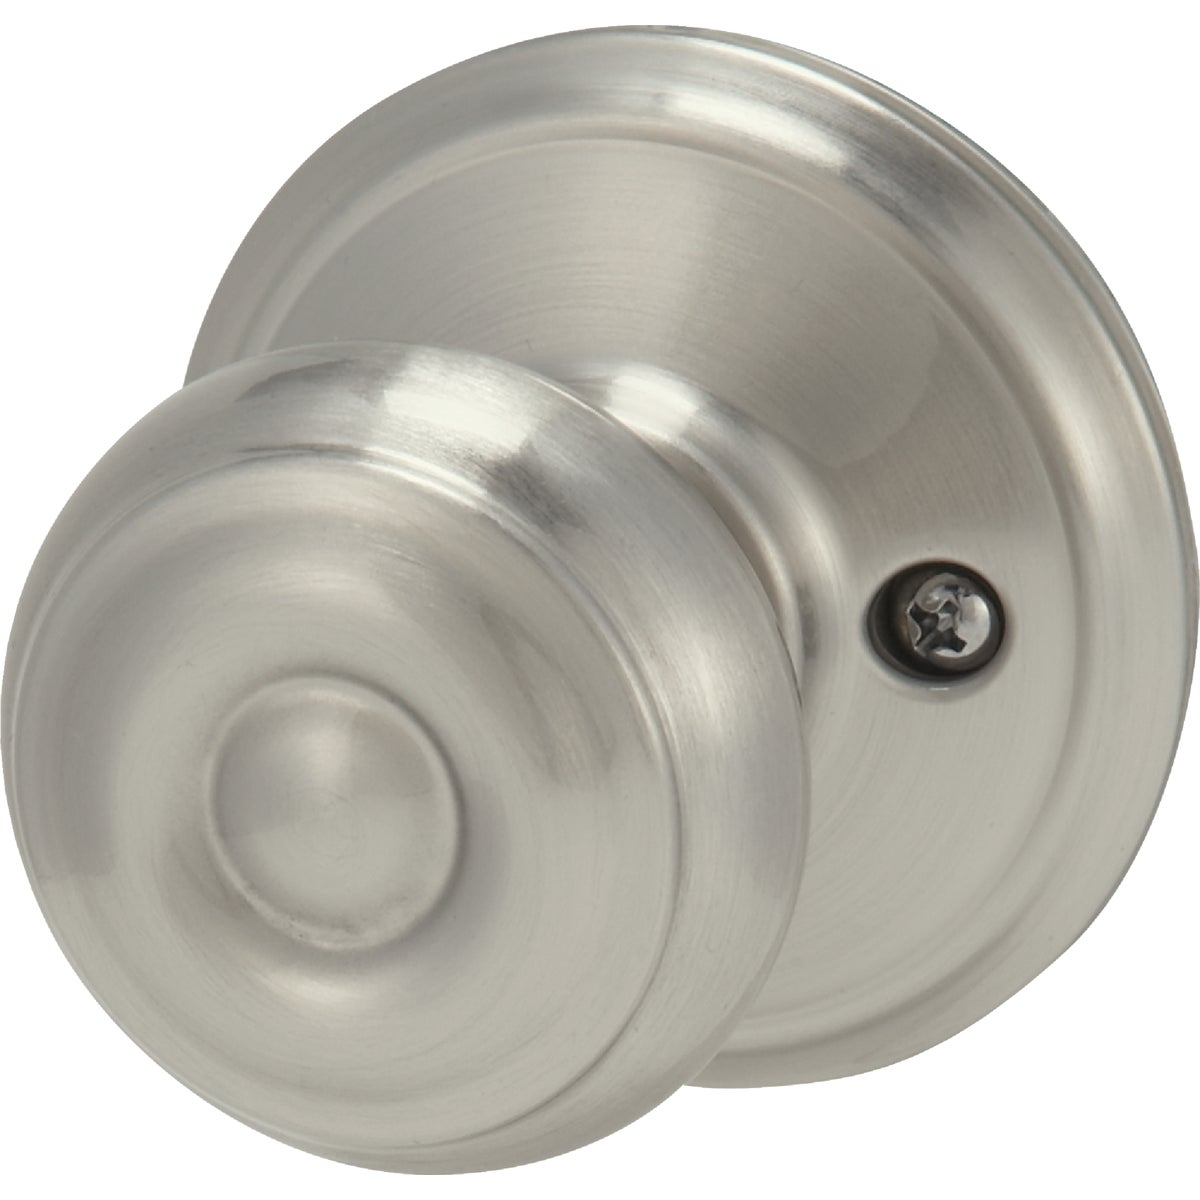 SN GOERGIAN DUMMY KNOB - F170VGEO619 by Schlage Lock Co